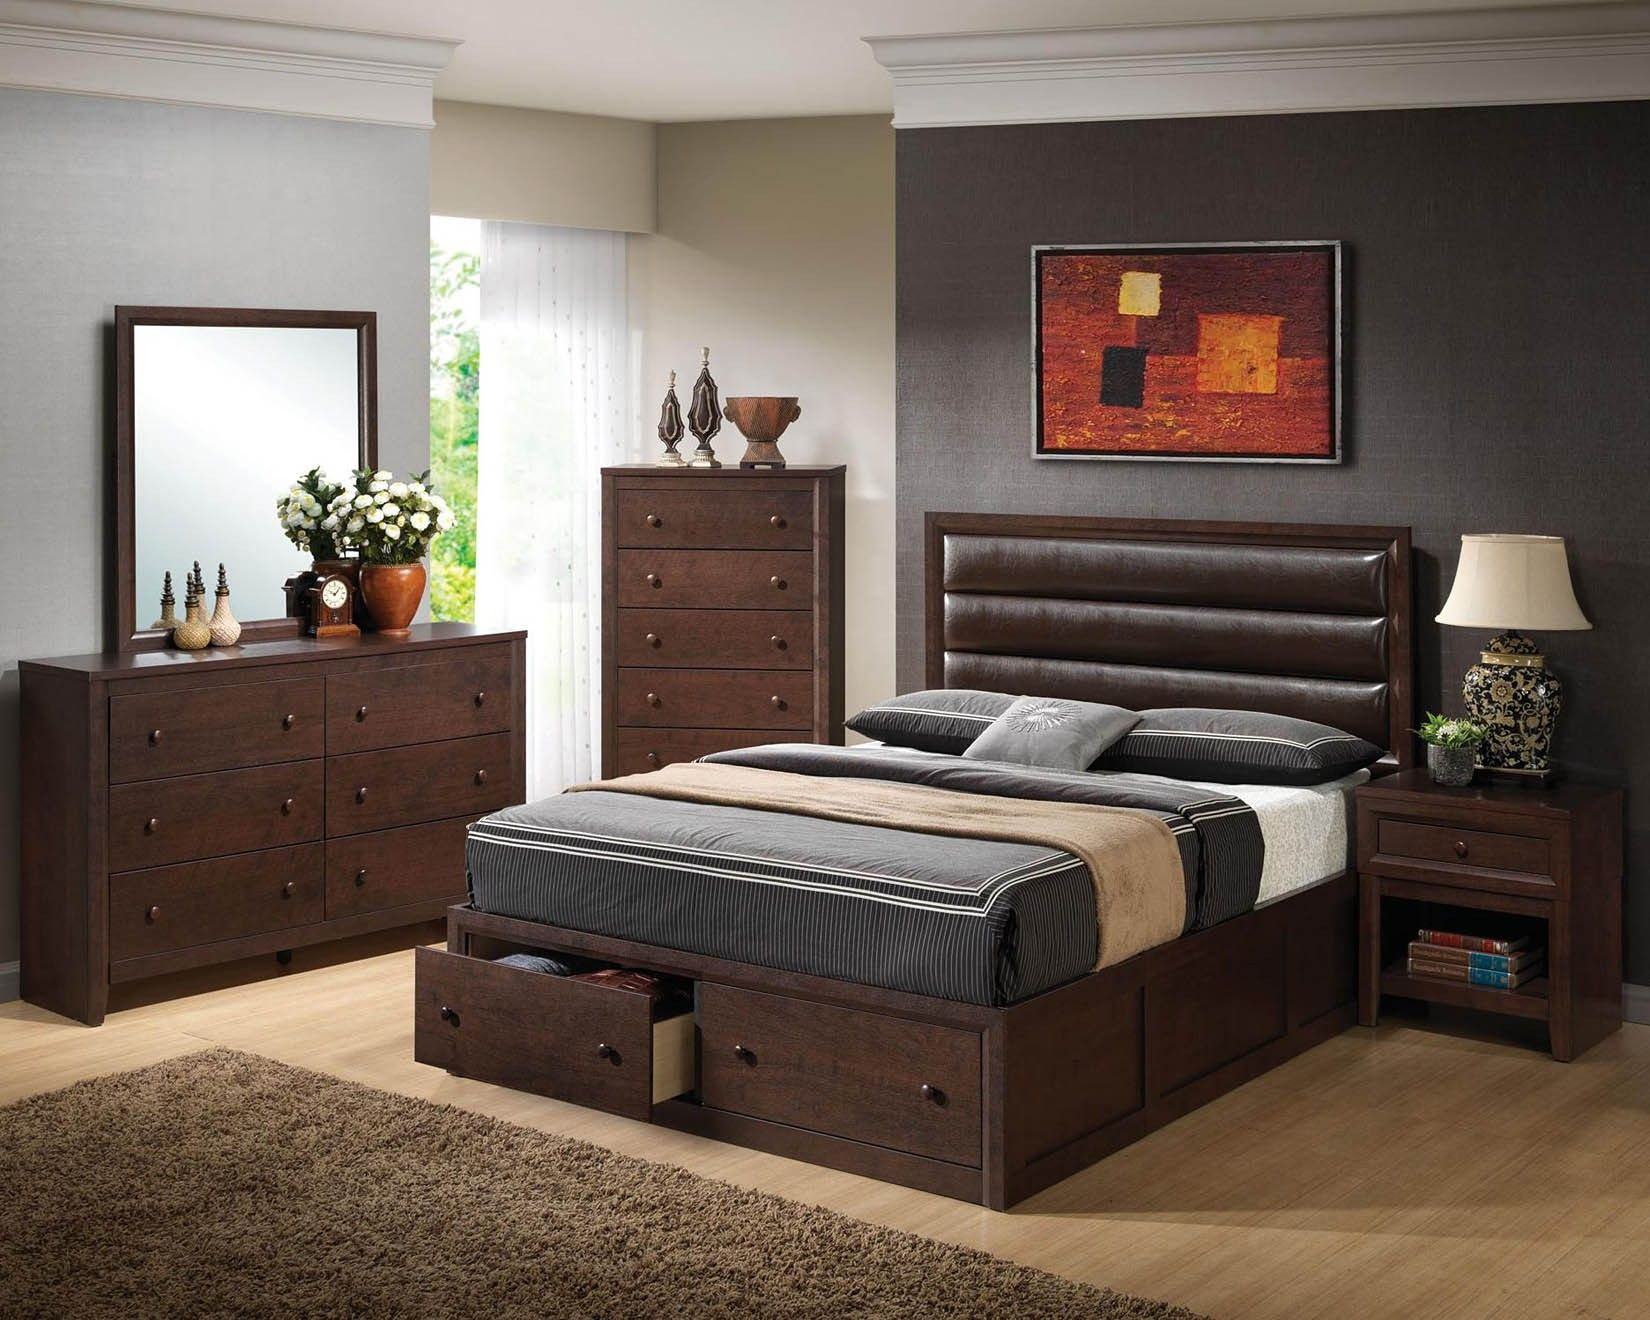 Bed headboard leather - Terrific Black Wooden Bedroom Furniture Set And Modern Leather Upholstered Headboard Also Square Vanity Mirror Excellent